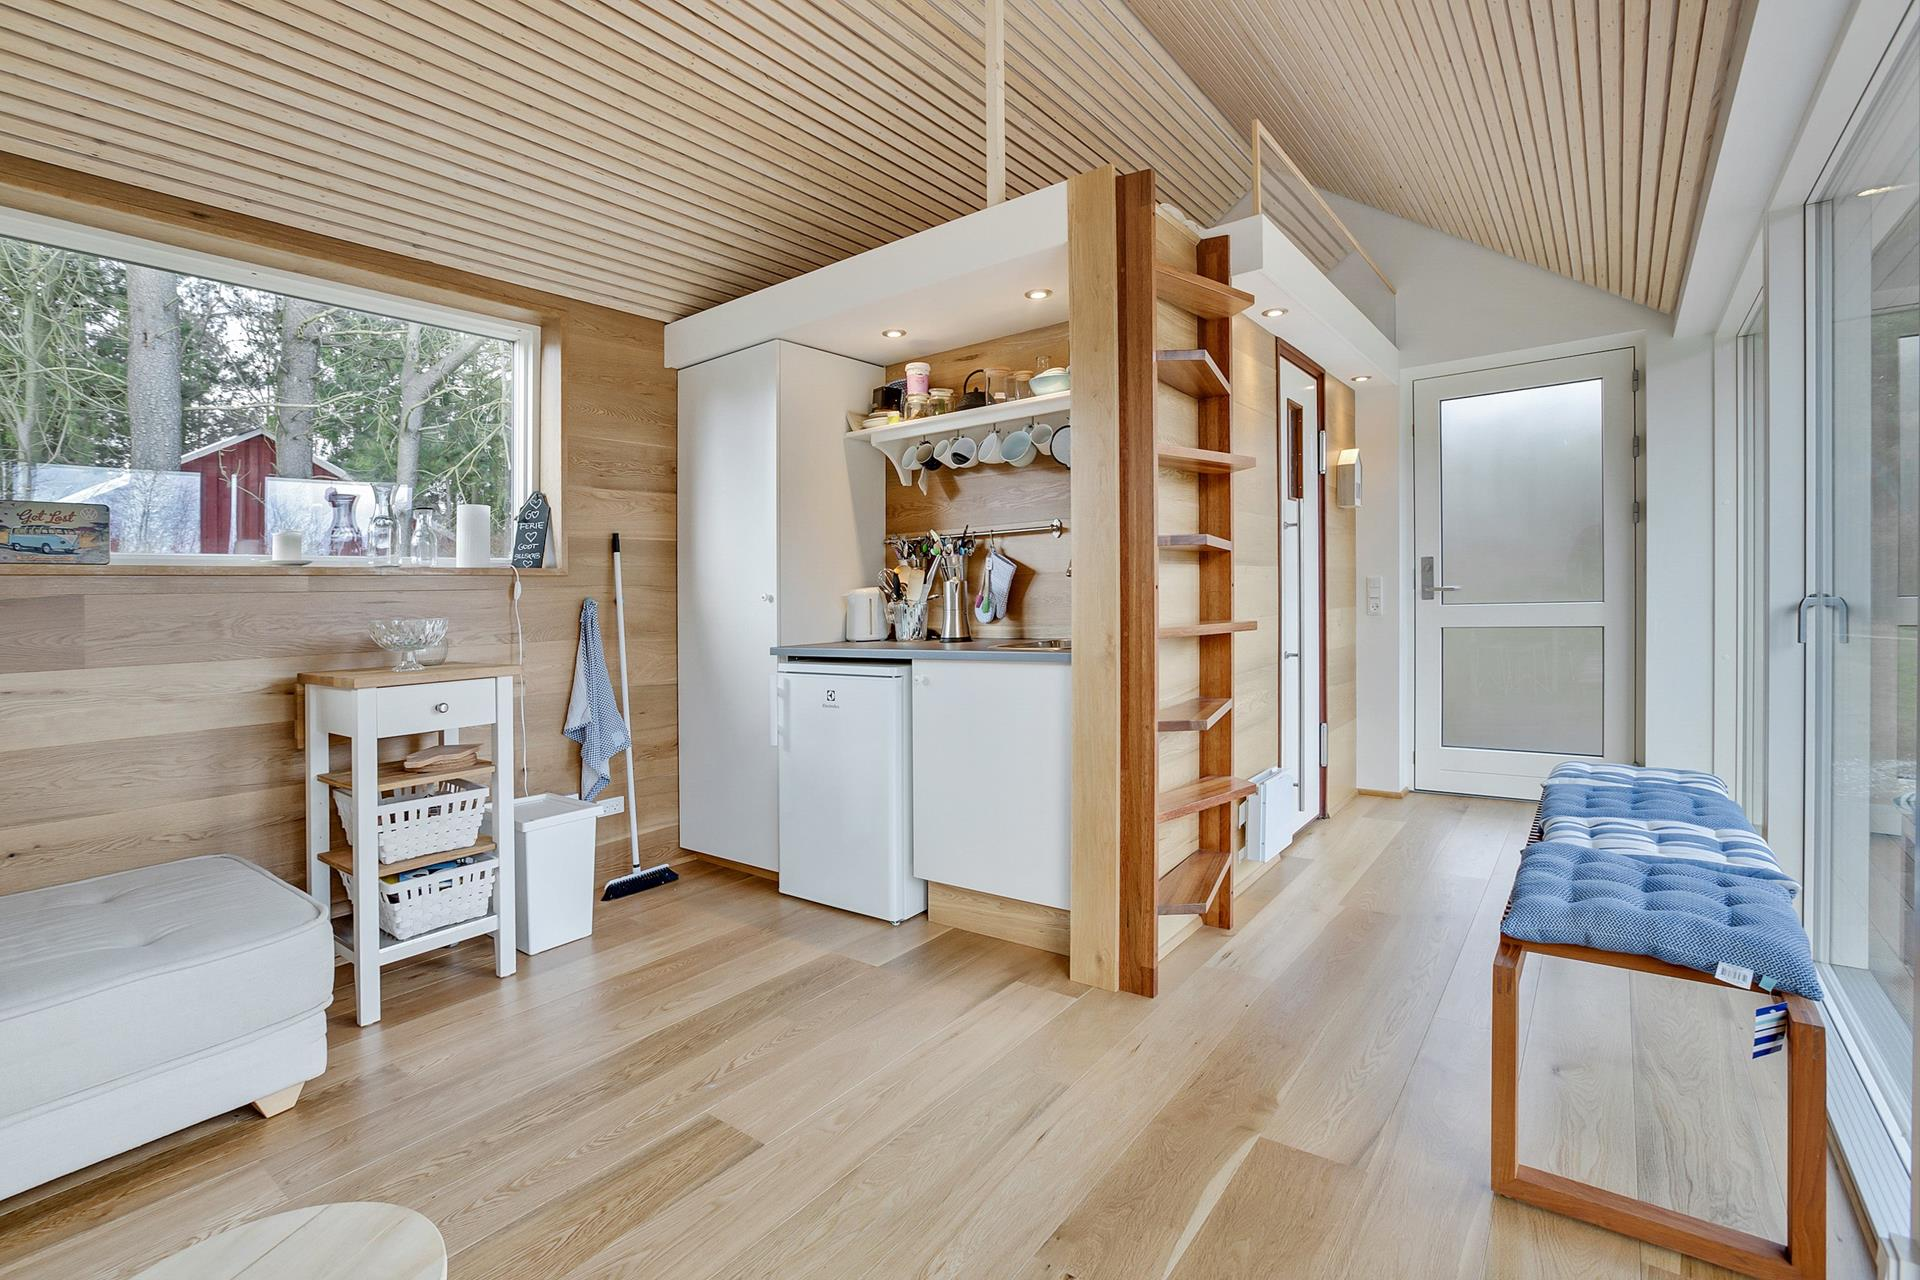 Good This Scandinavian Modern Tiny House In Denmark Has A 258 Sq Ft Studio Floor  Plan With